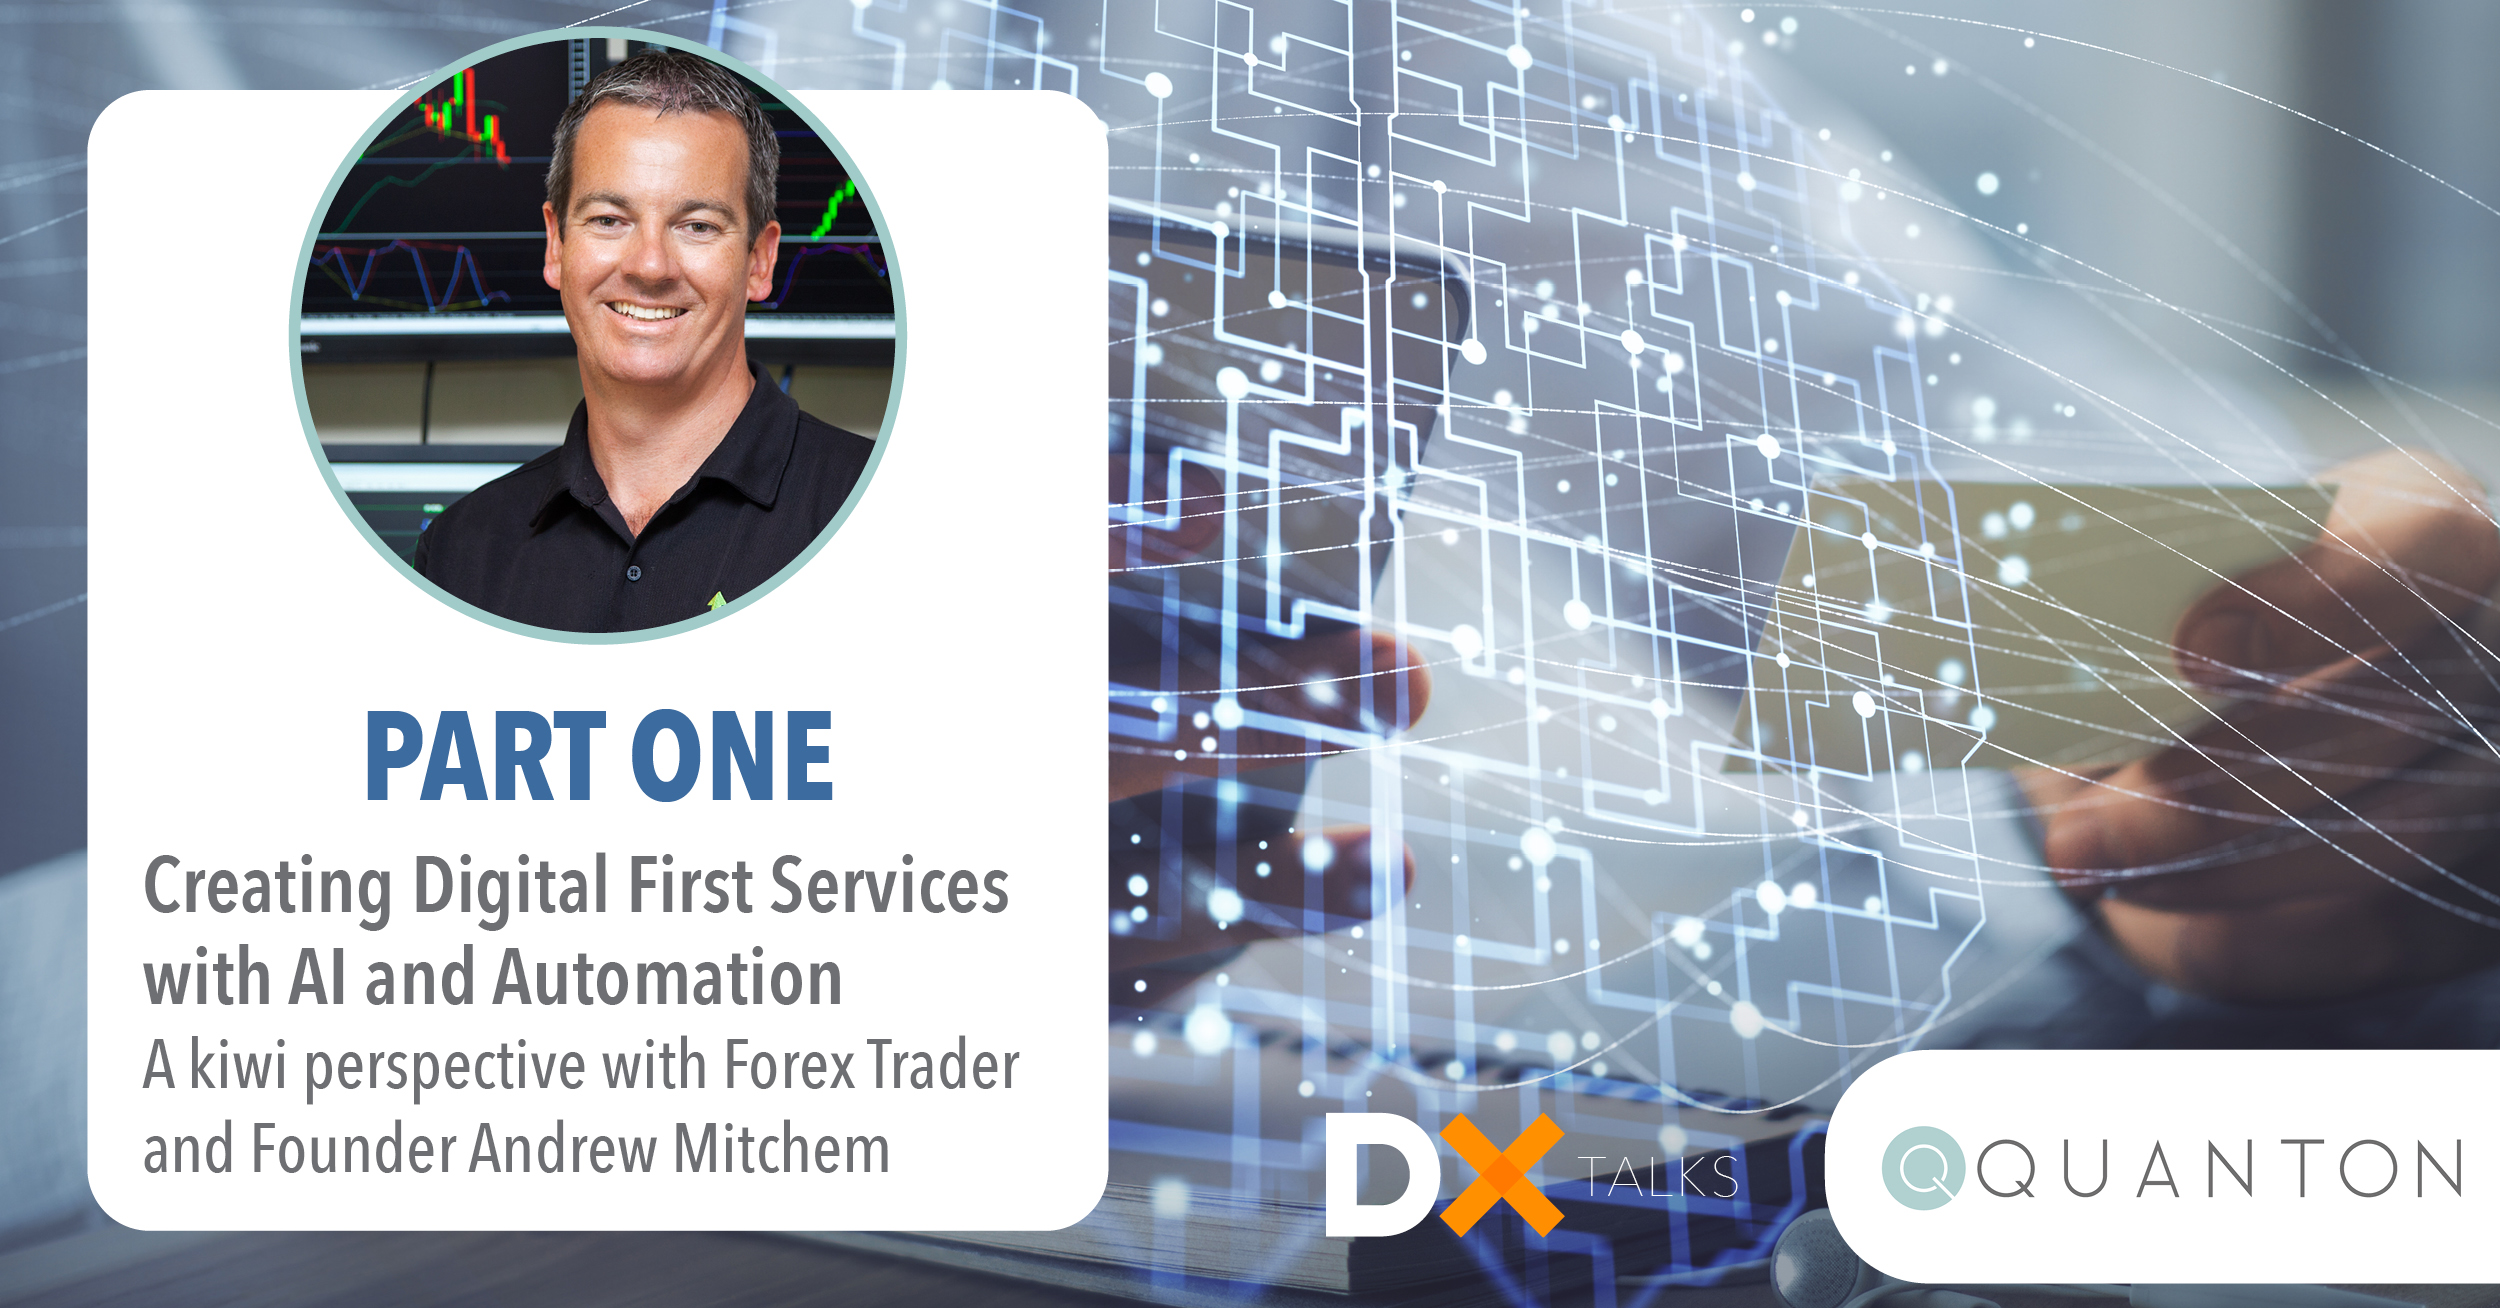 Creating Digital First Products and Services - Andrew Mitchem